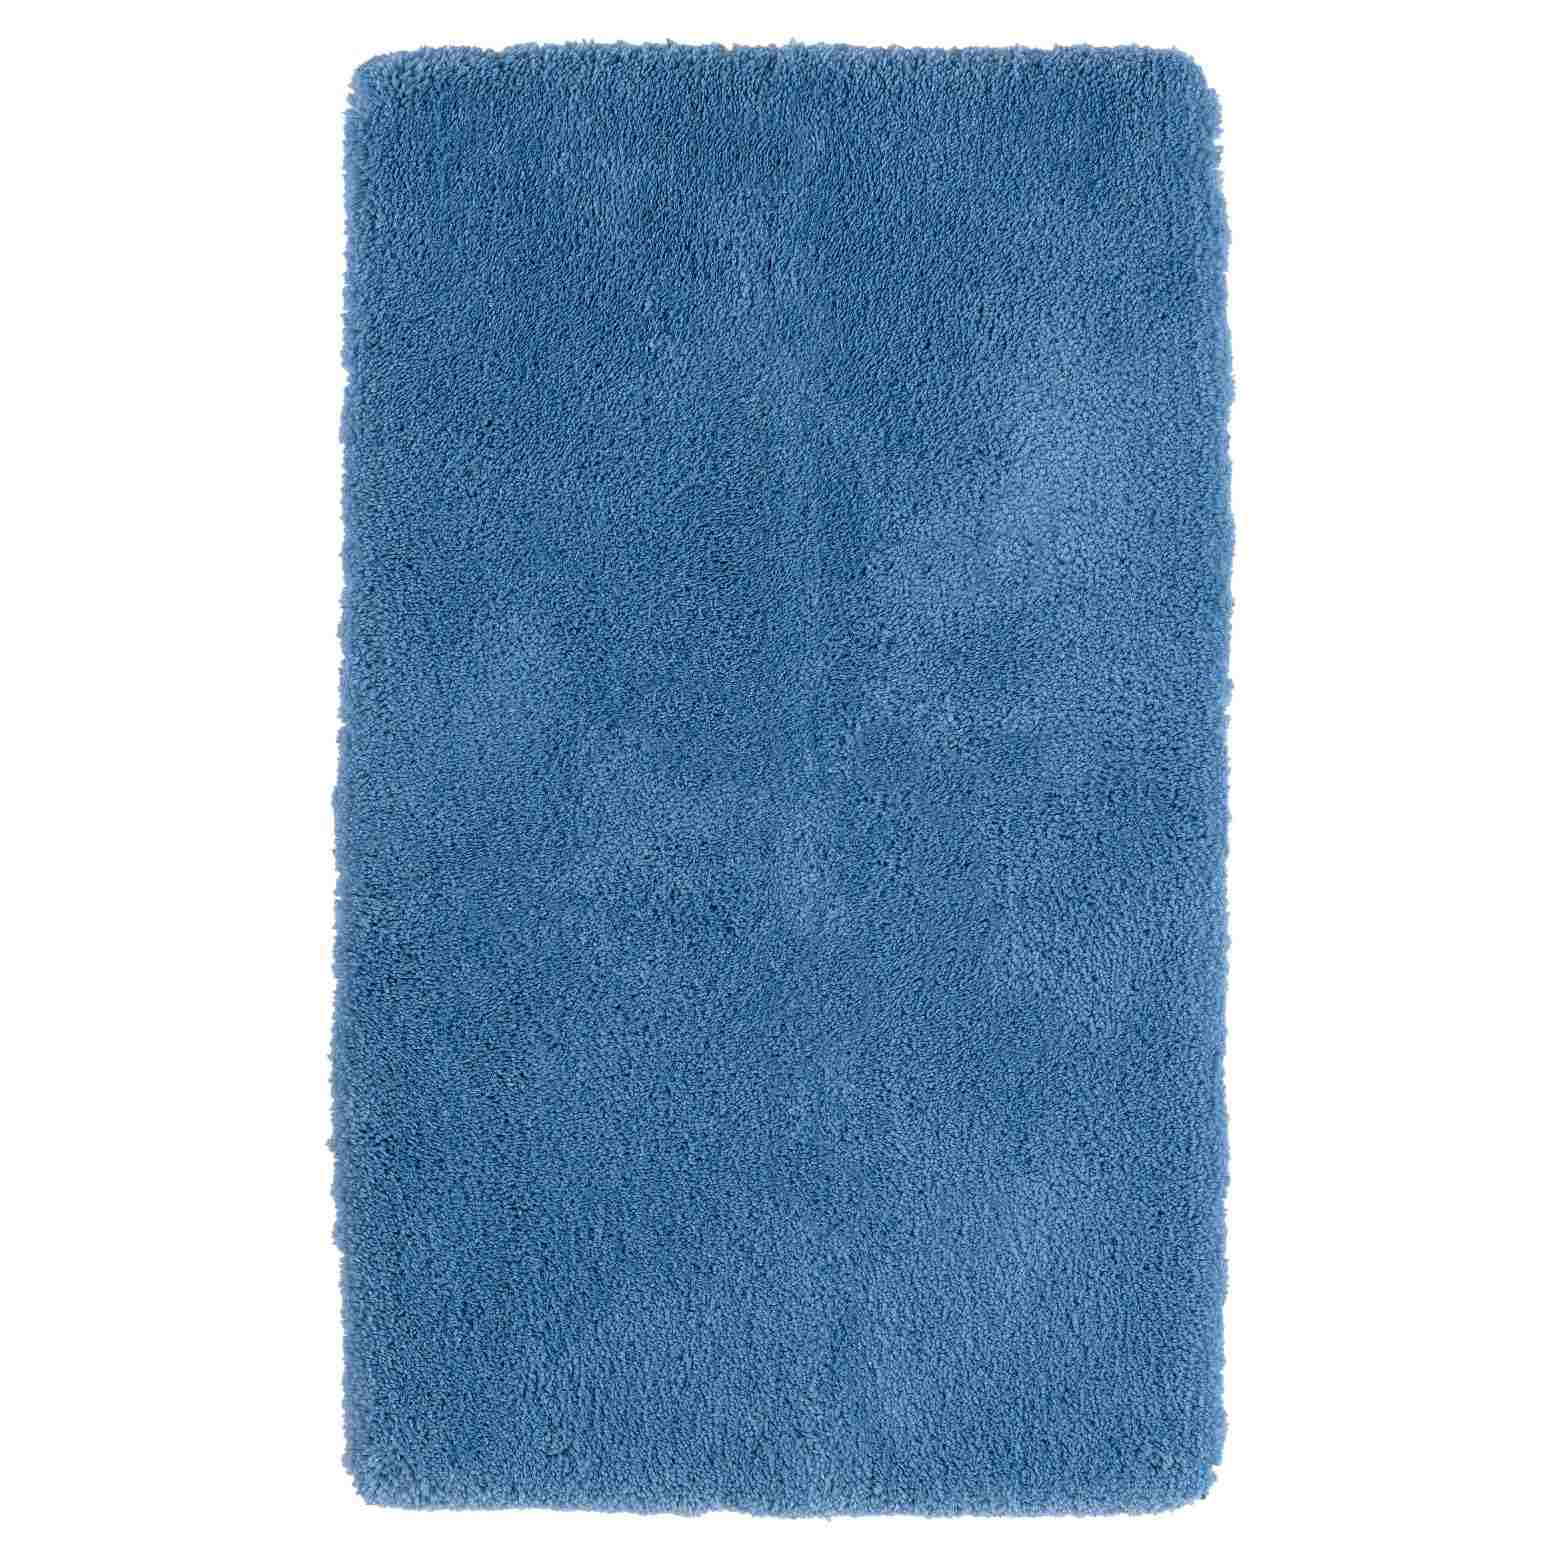 The 8 Best Bath Mats Of 2020